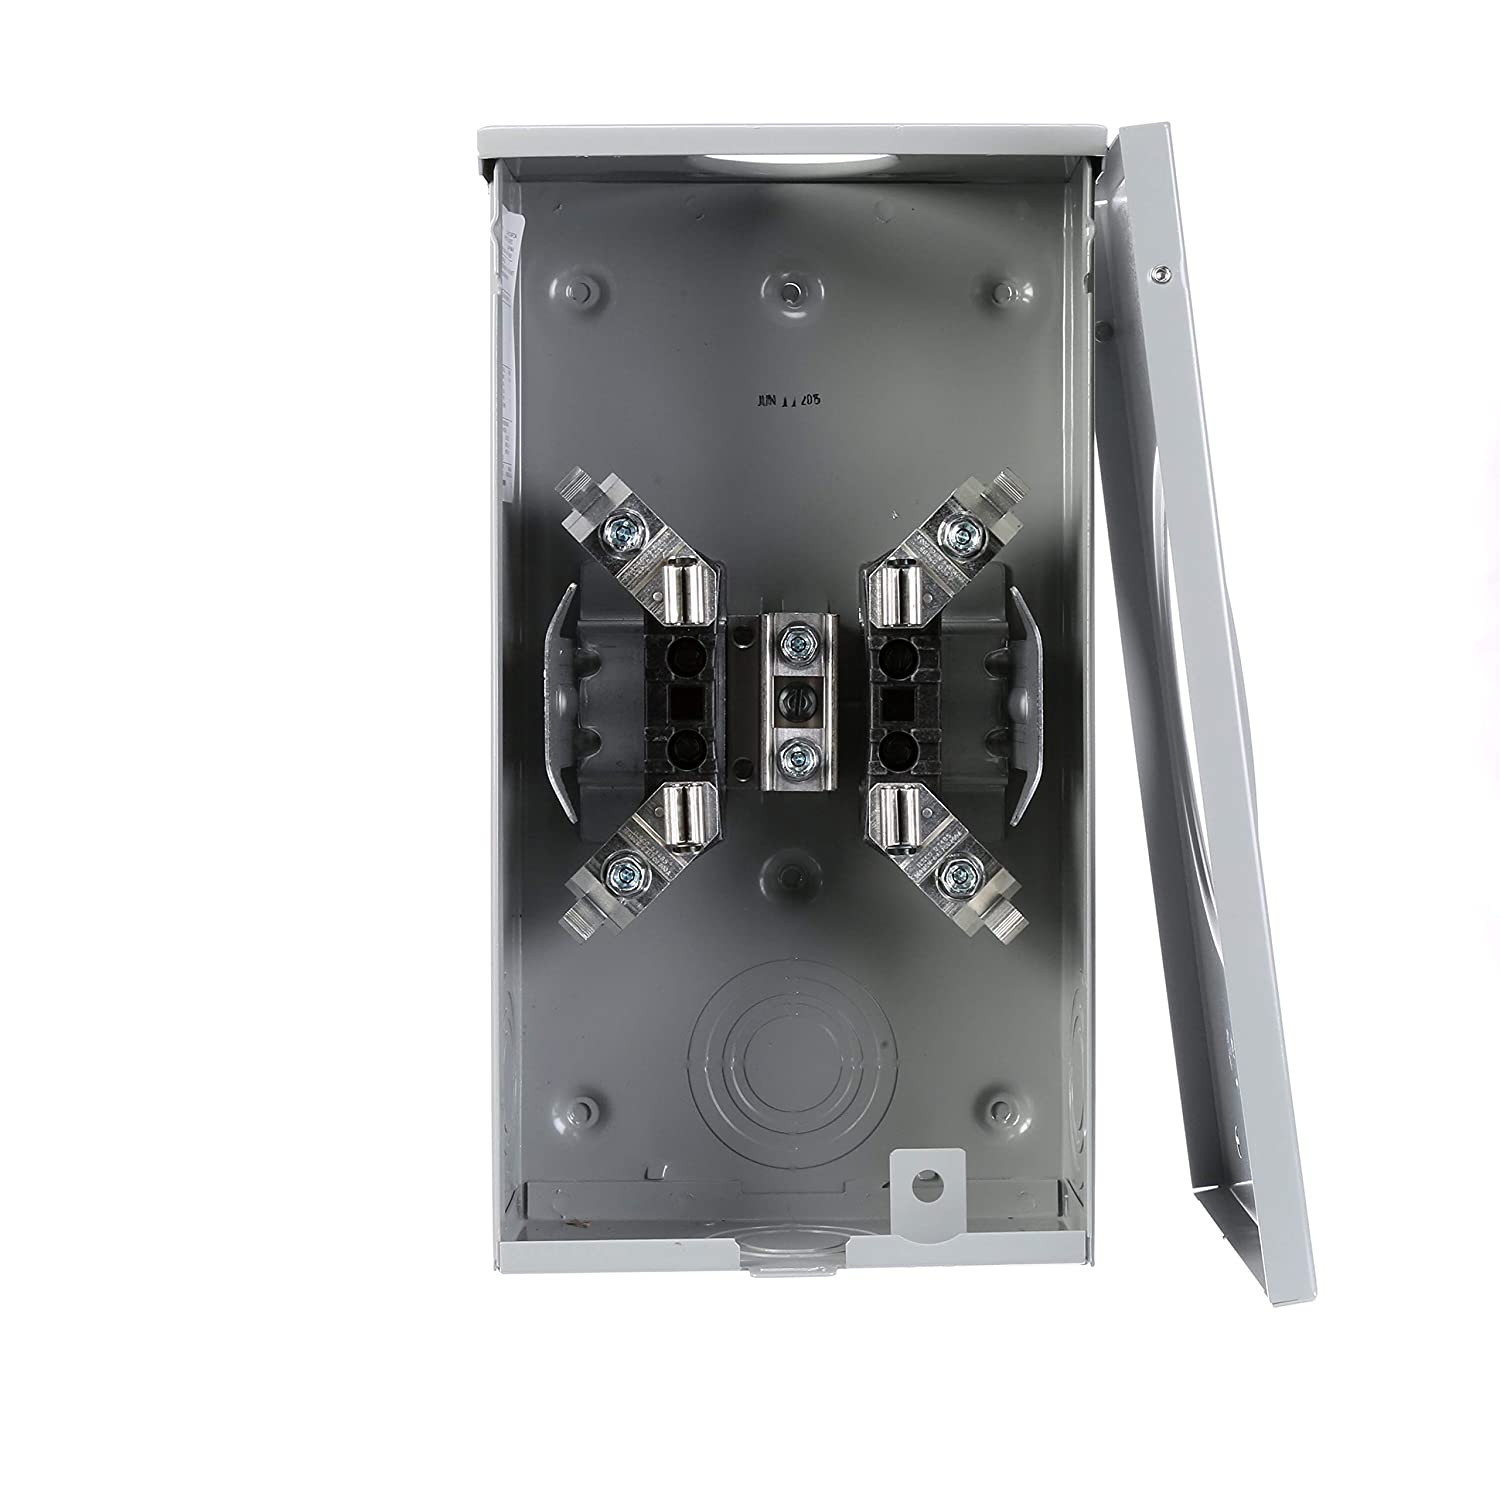 4 Jaw Siemens SUAT317-0PZA 200-Amp Horn Bypass Meter Socket Ringless Cover Overhead Feed,7//16 Barrell Lock